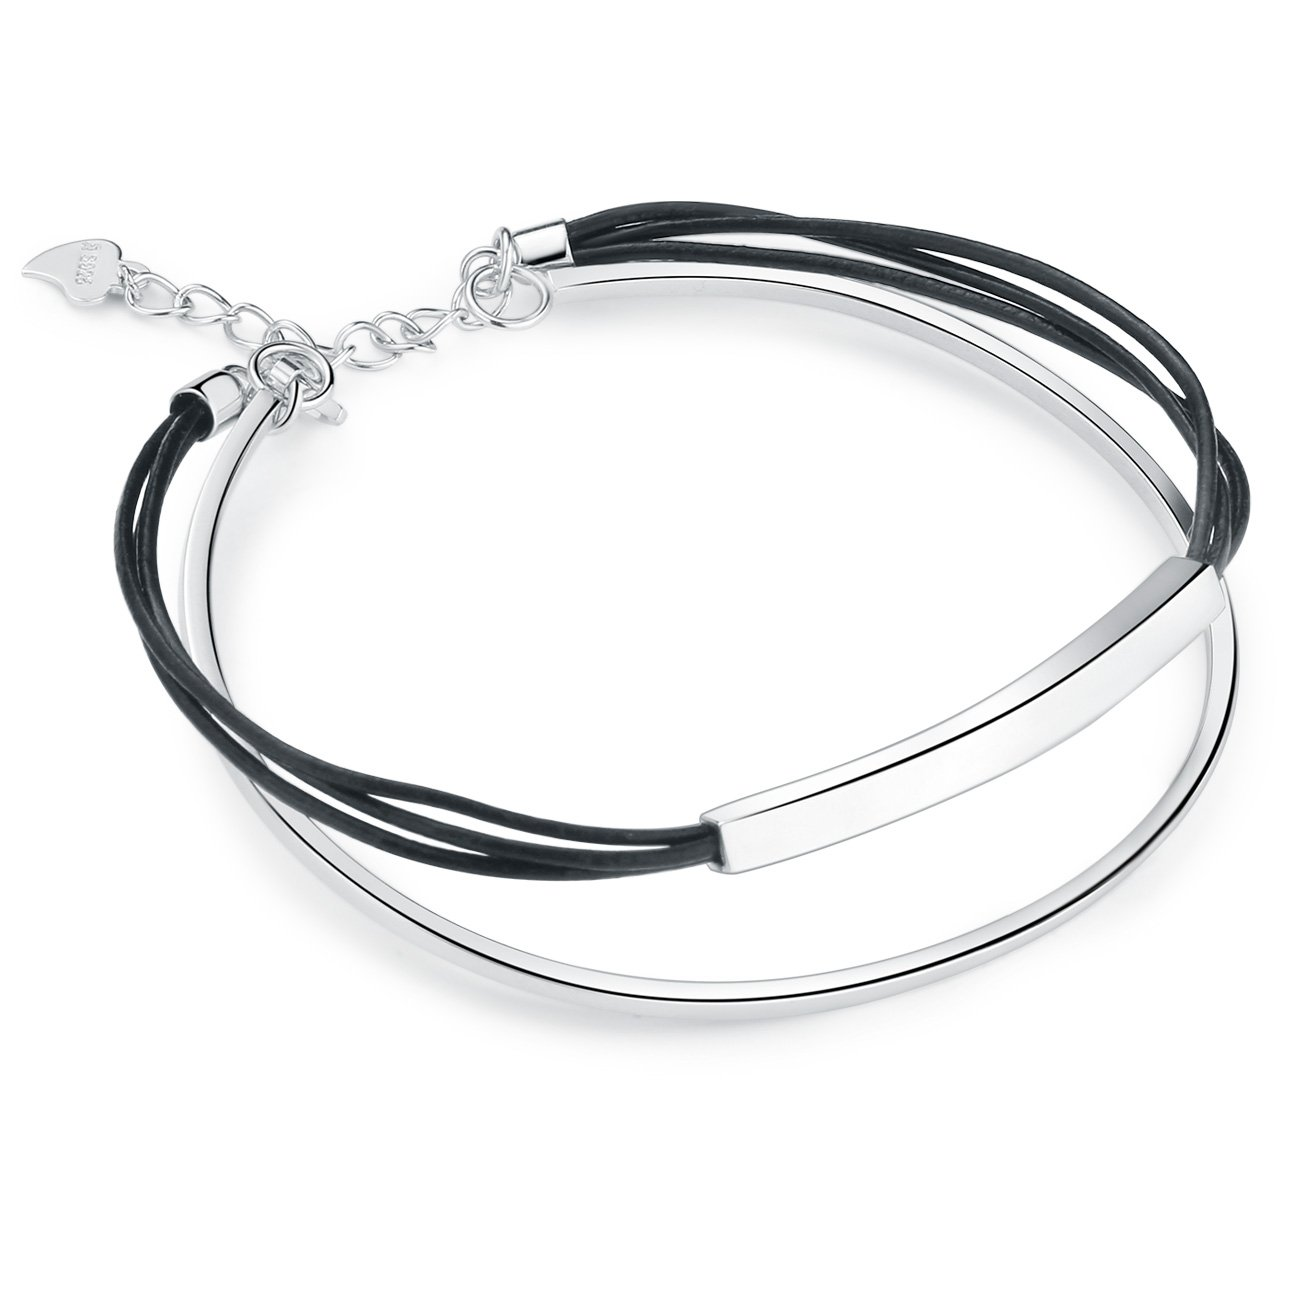 SA SILVERAGE 925 Sterling Silver Black Leather Rope Wrap Bracelets for Cool Women Men 2-Layer Cuff